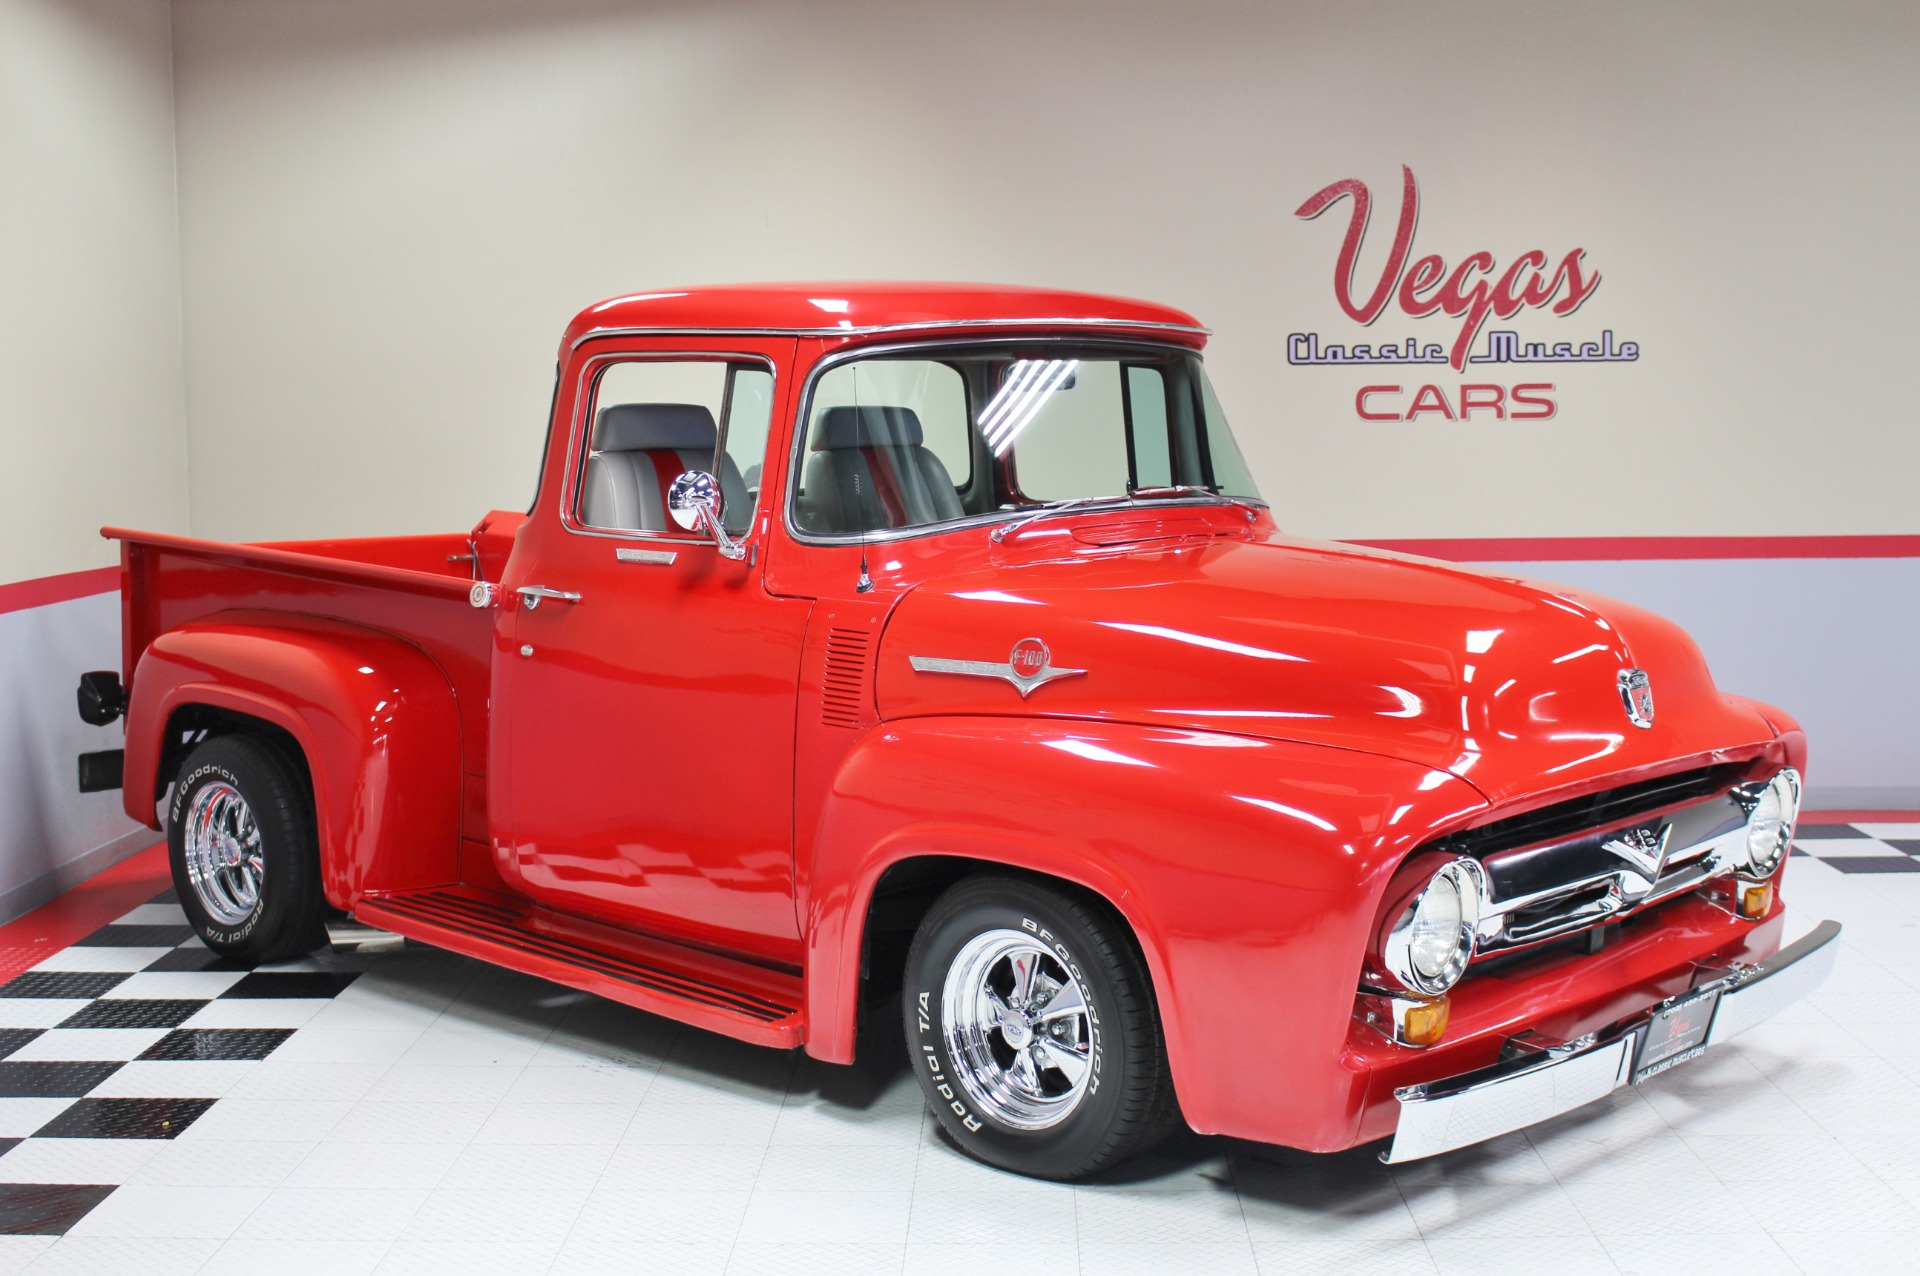 Used 1956 ford f100 pickup